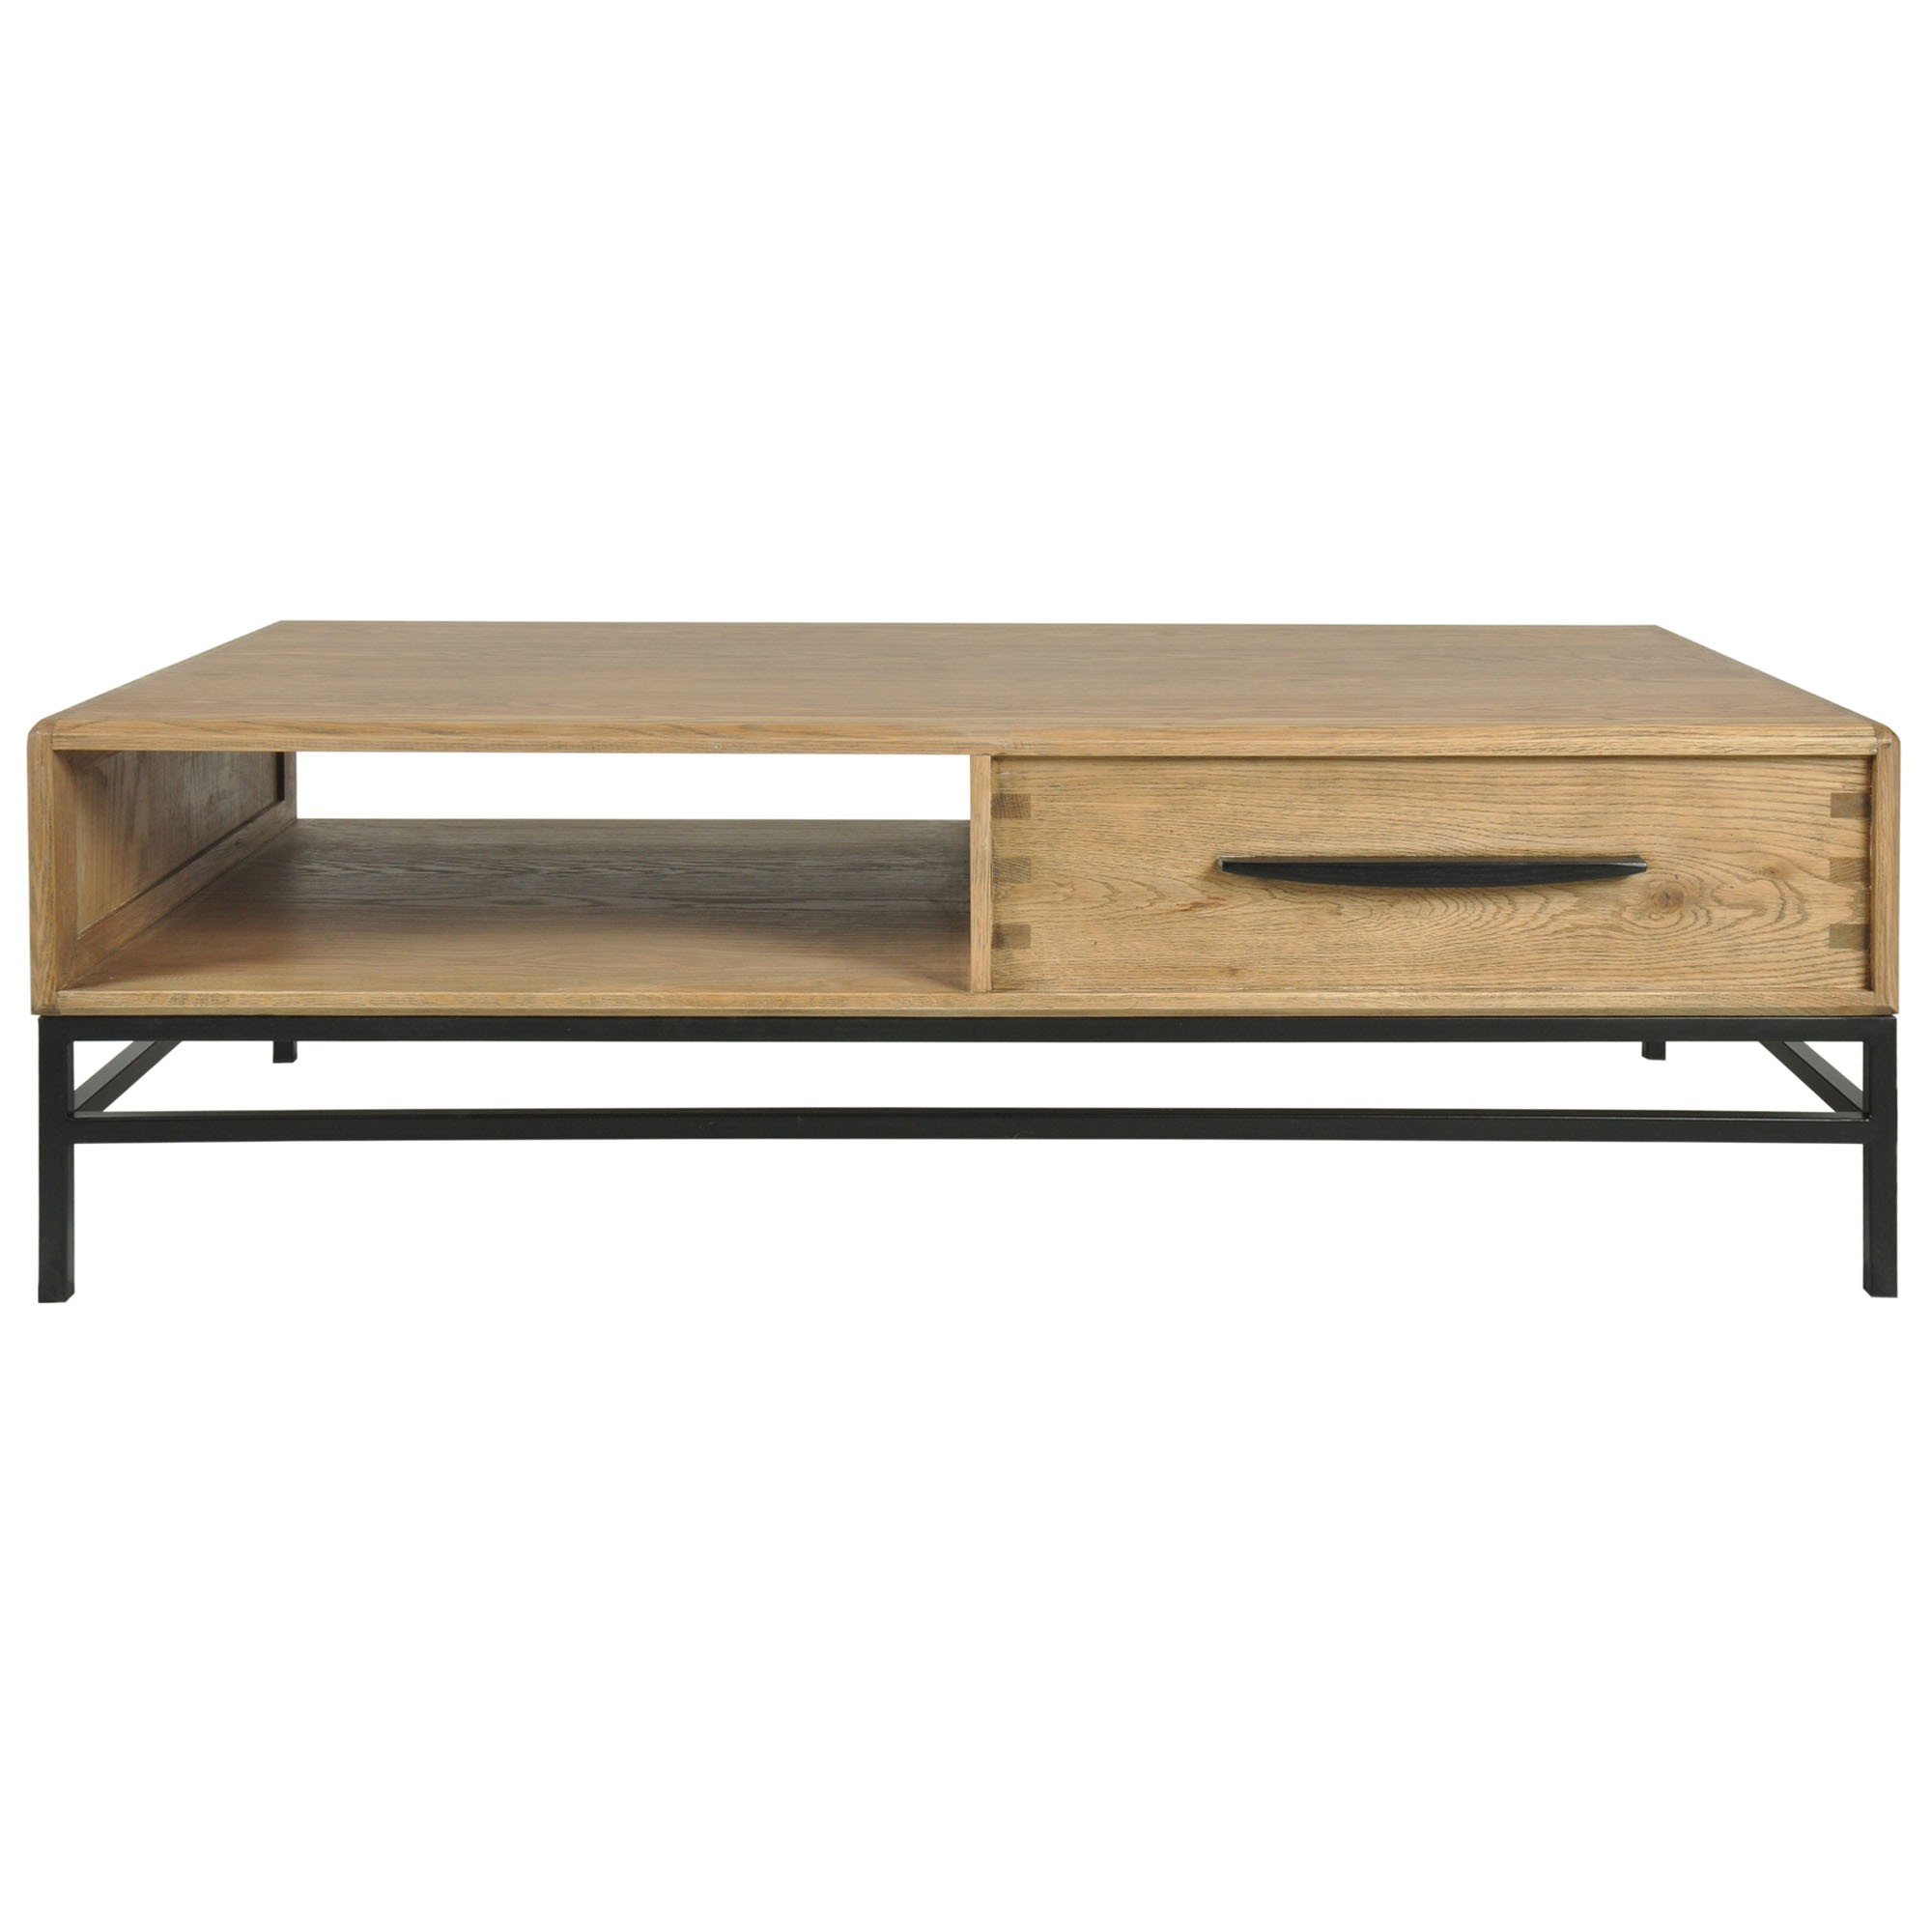 Reverie Oak Timber & Iron Coffee Table, 140cm